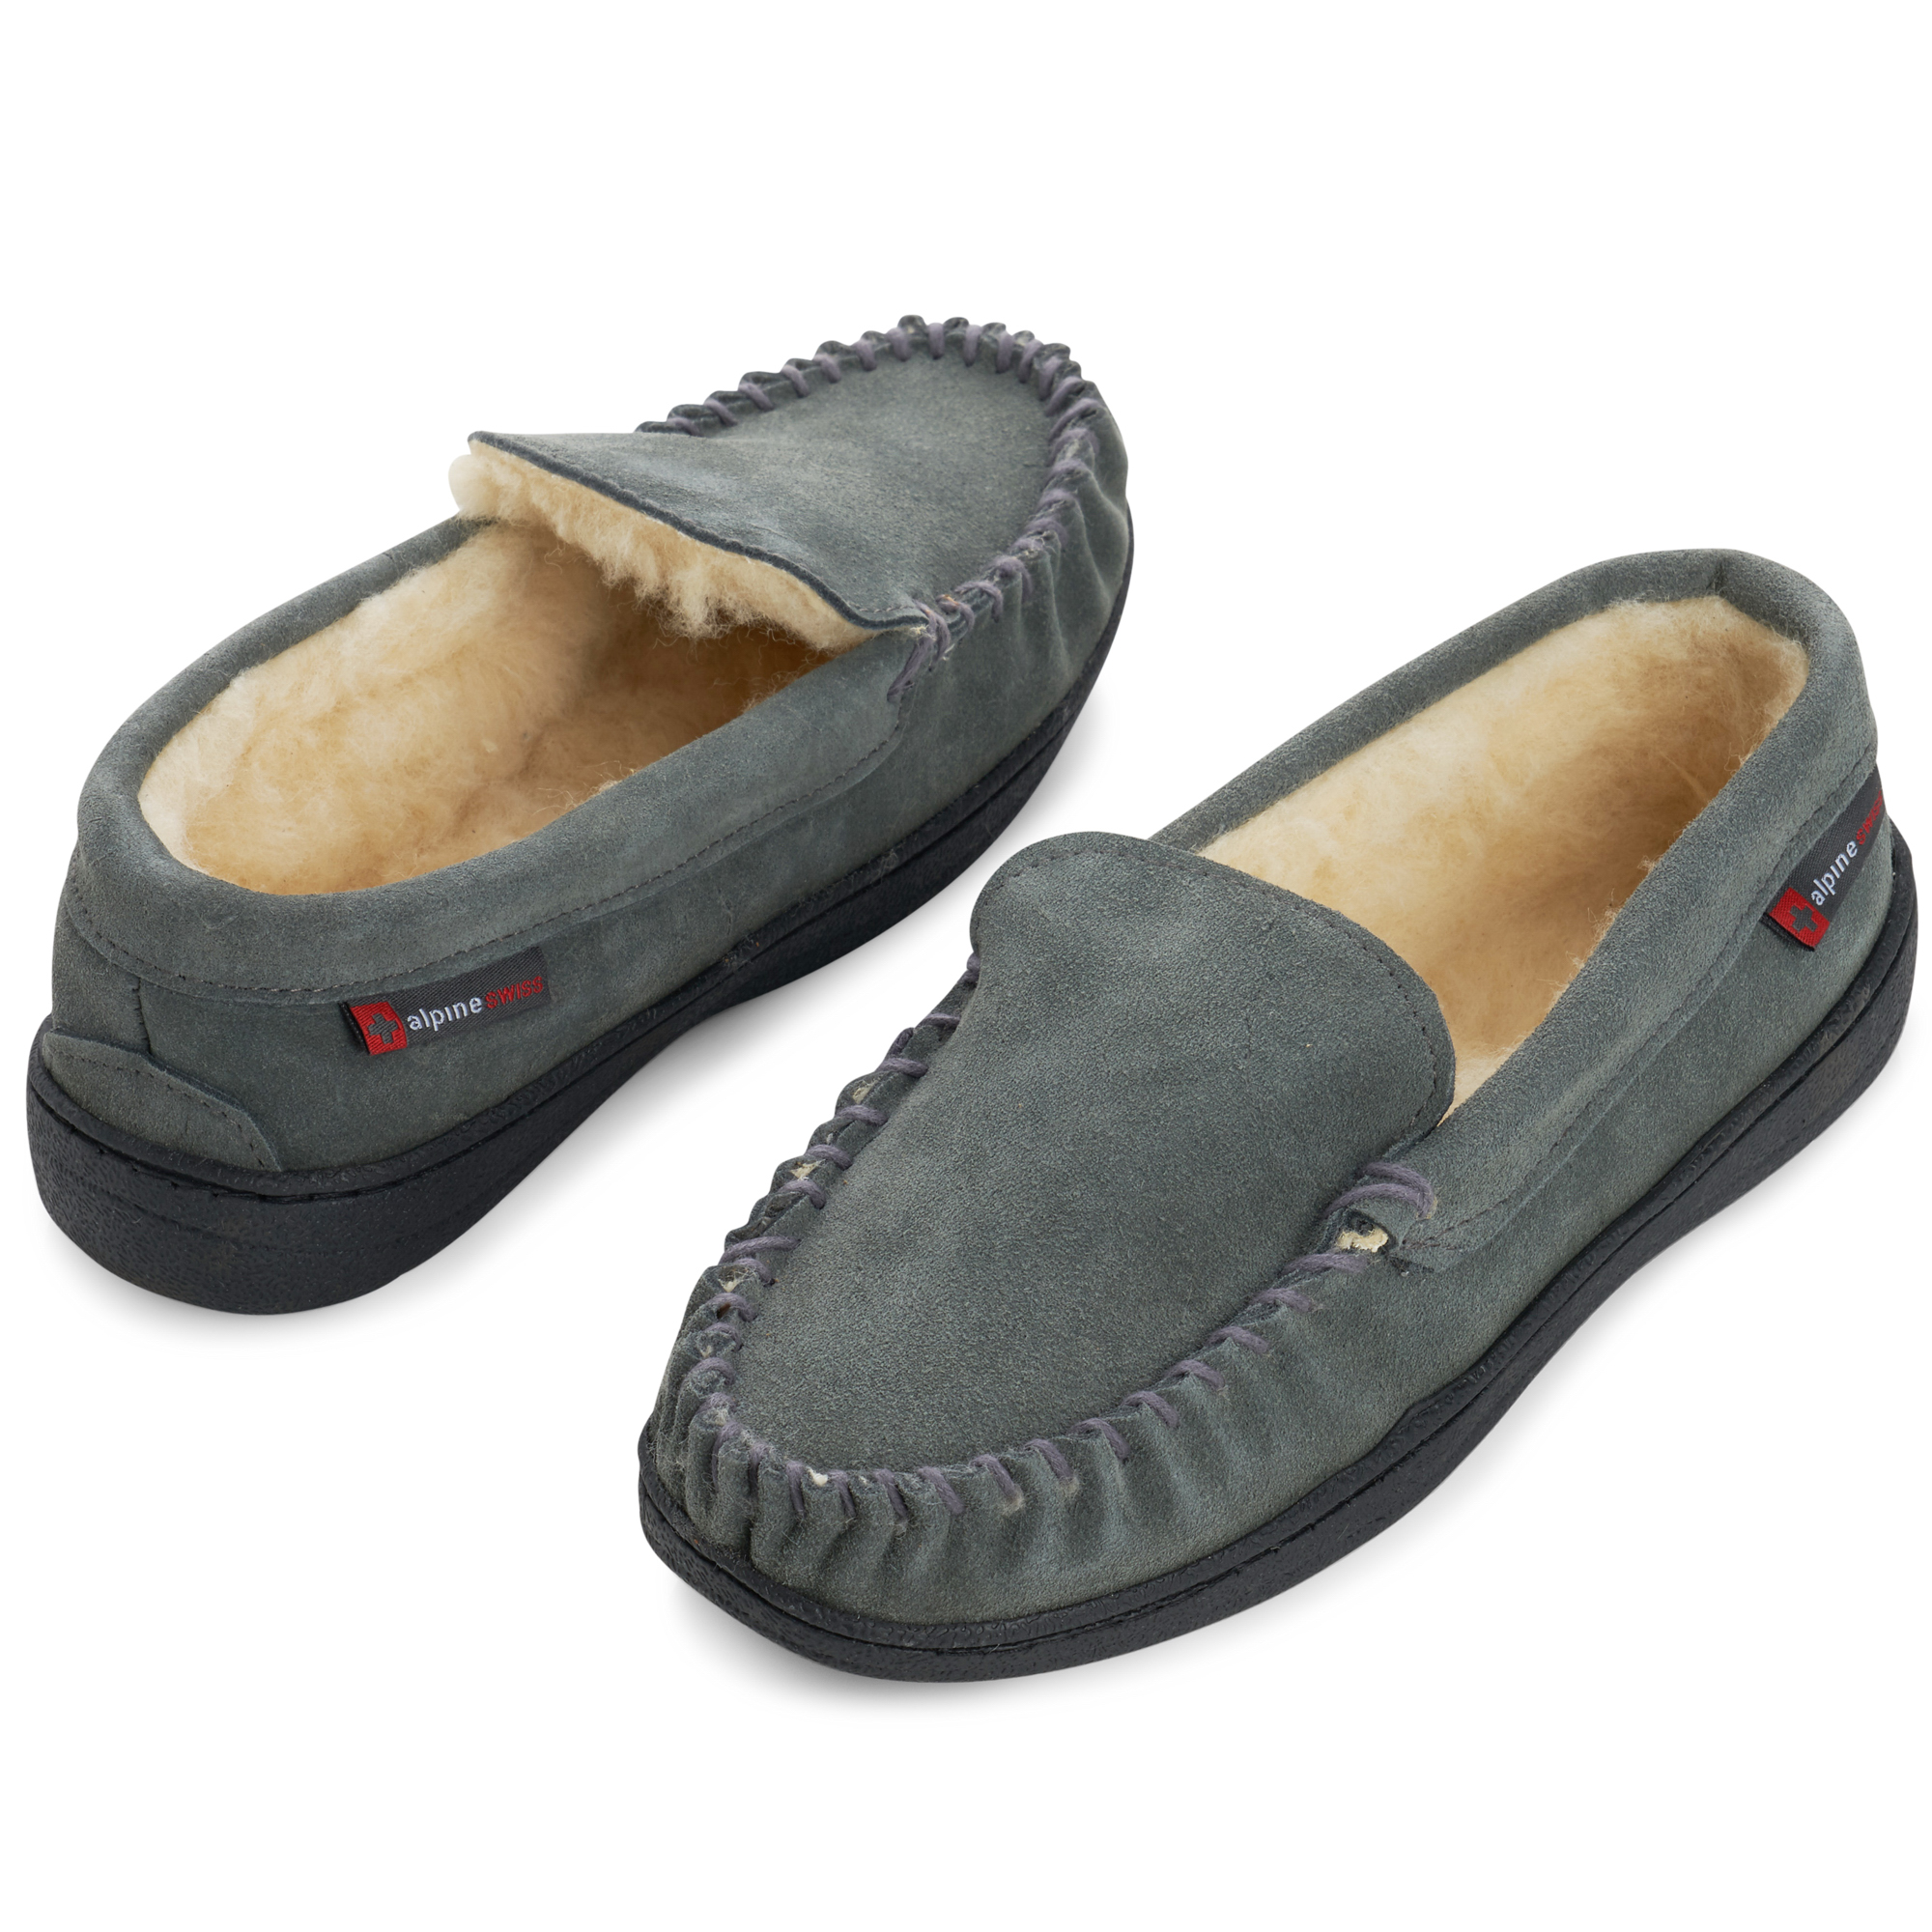 Alpine-Swiss-Yukon-Mens-Suede-Shearling-Moccasin-Slippers-Moc-Toe-Slip-On-Shoes thumbnail 30